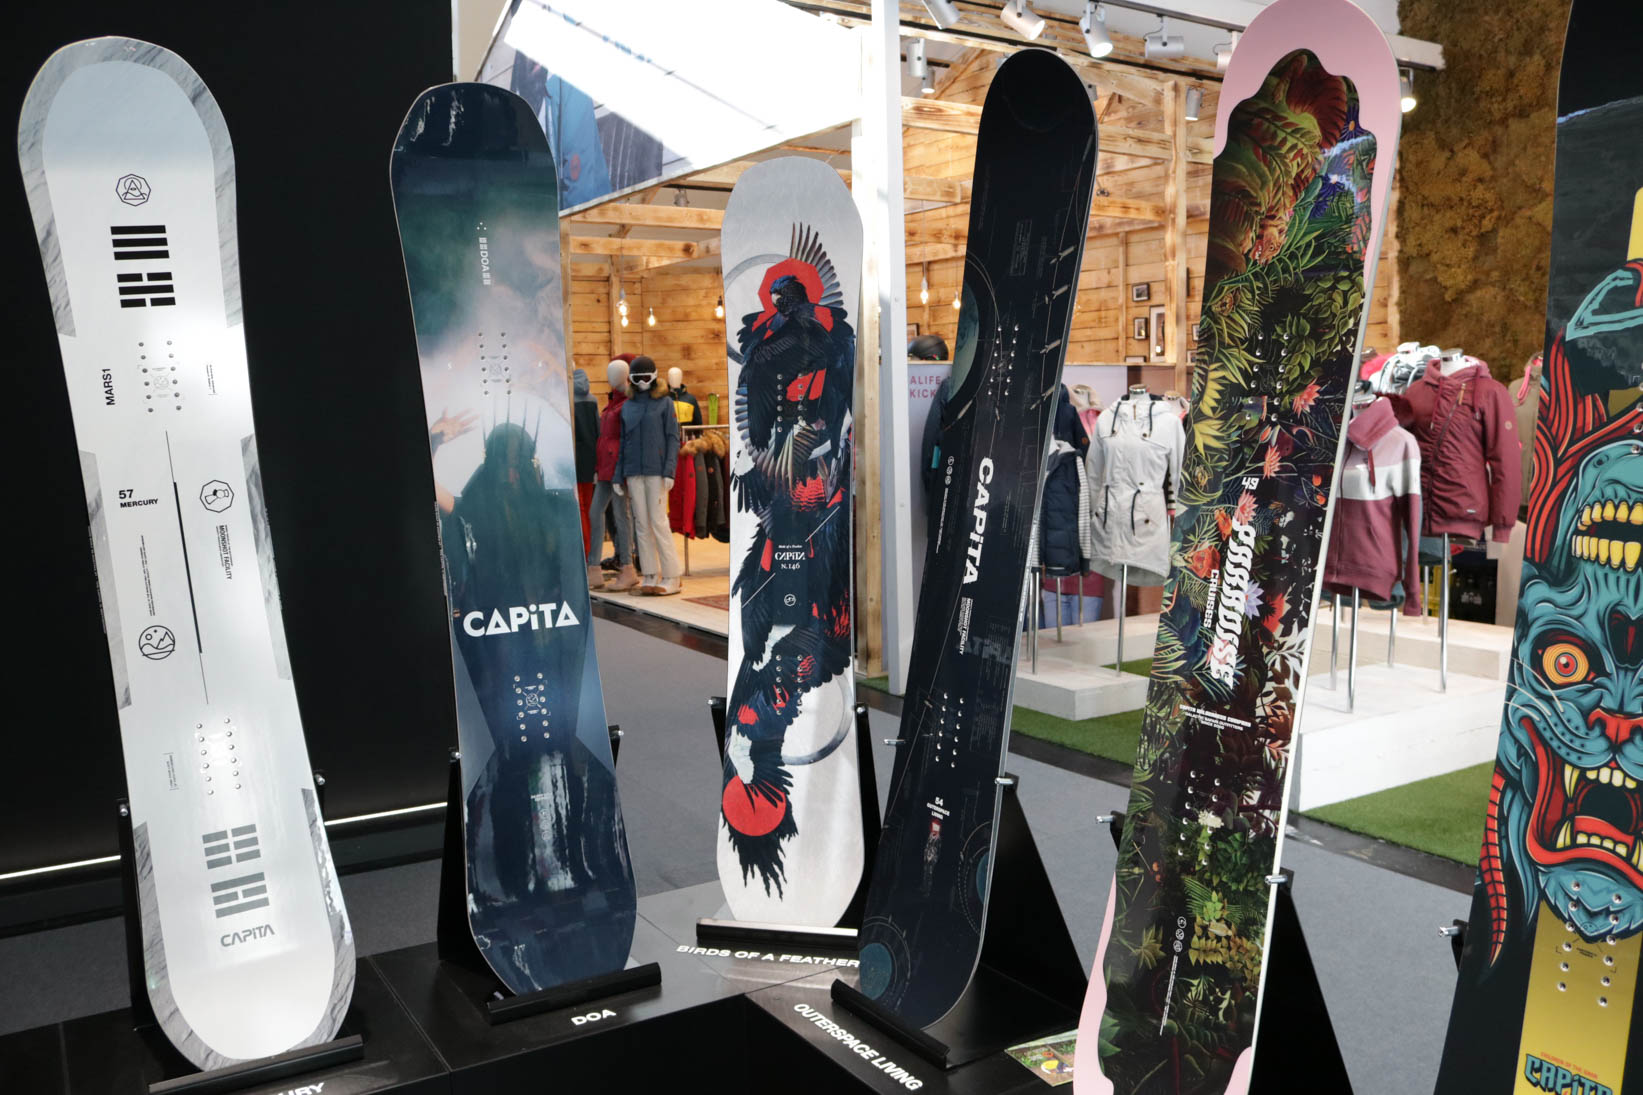 Capita Snowboards 18/19 (links nach rechts): Mercury, DOA, Birds of a Feather, Outerspace Living, Paradise Causes